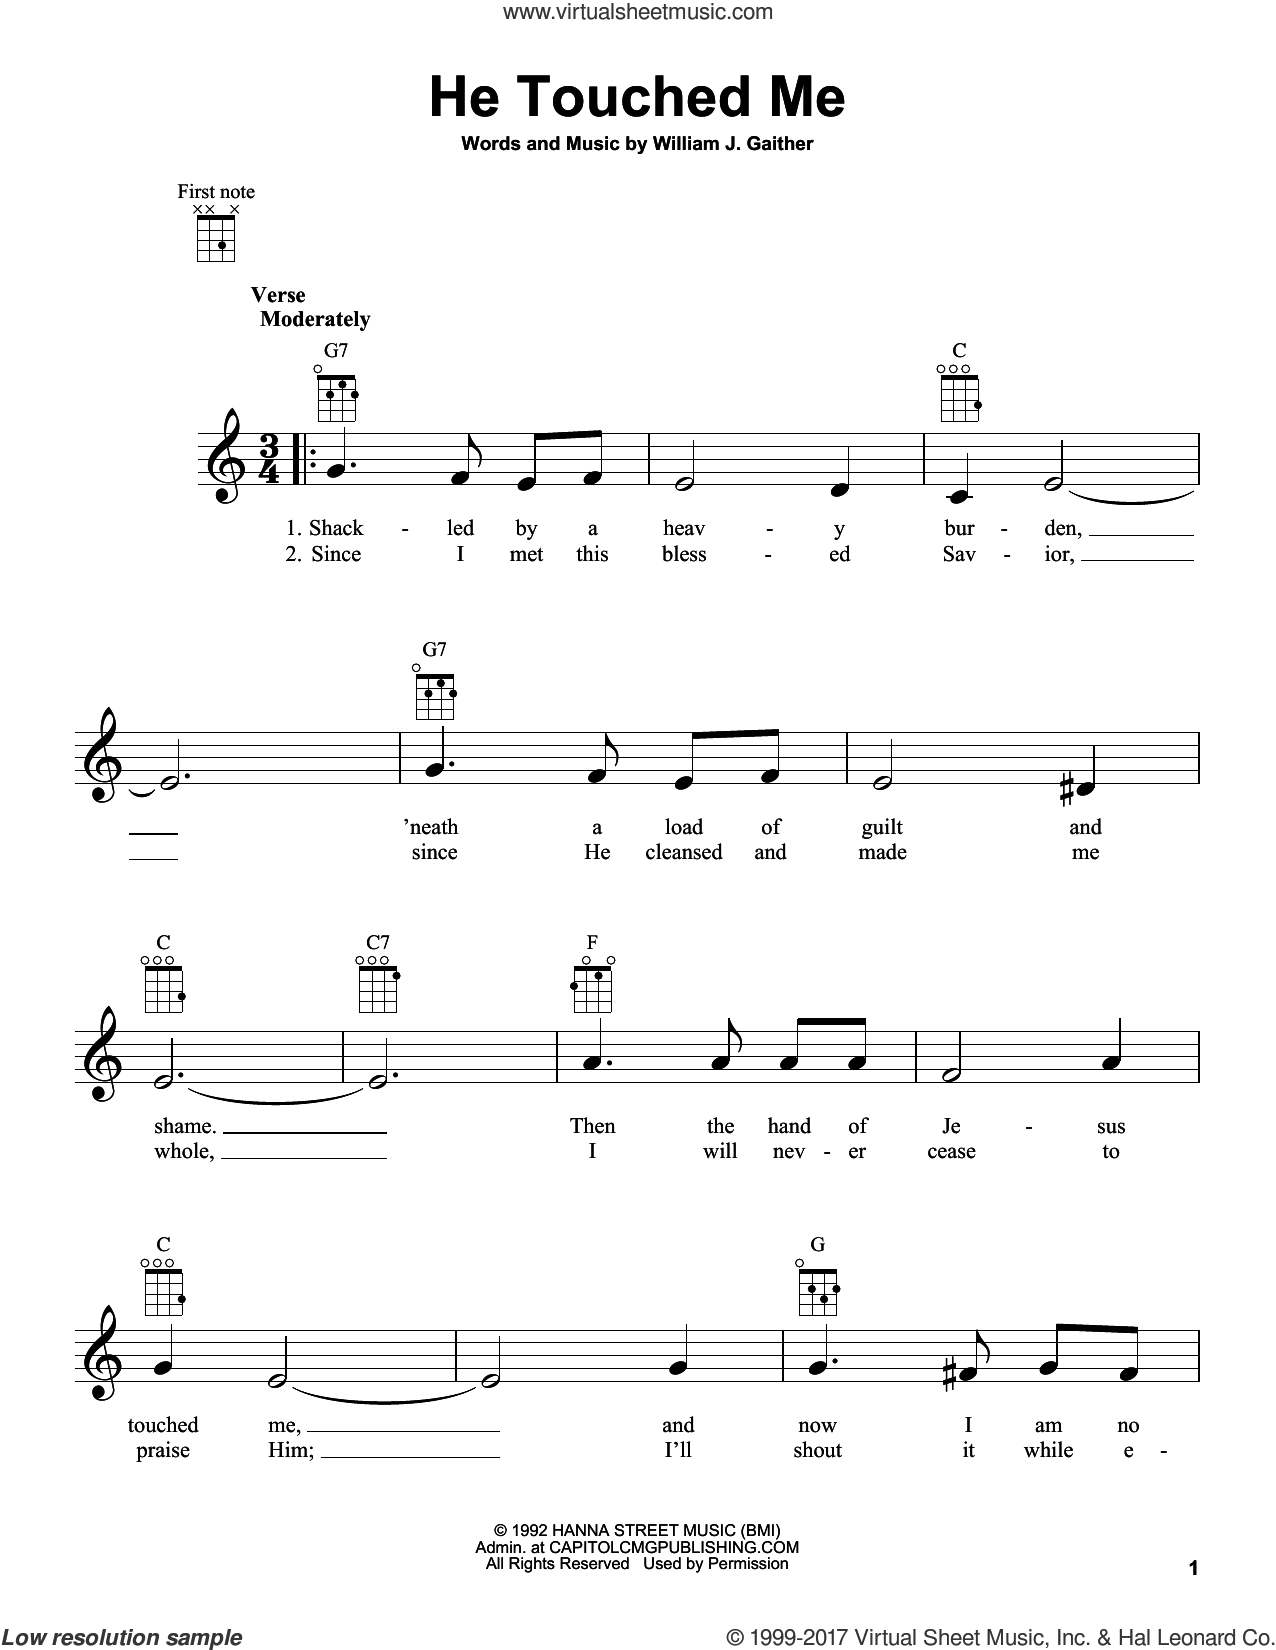 He Touched Me sheet music for ukulele by William J. Gaither, intermediate skill level